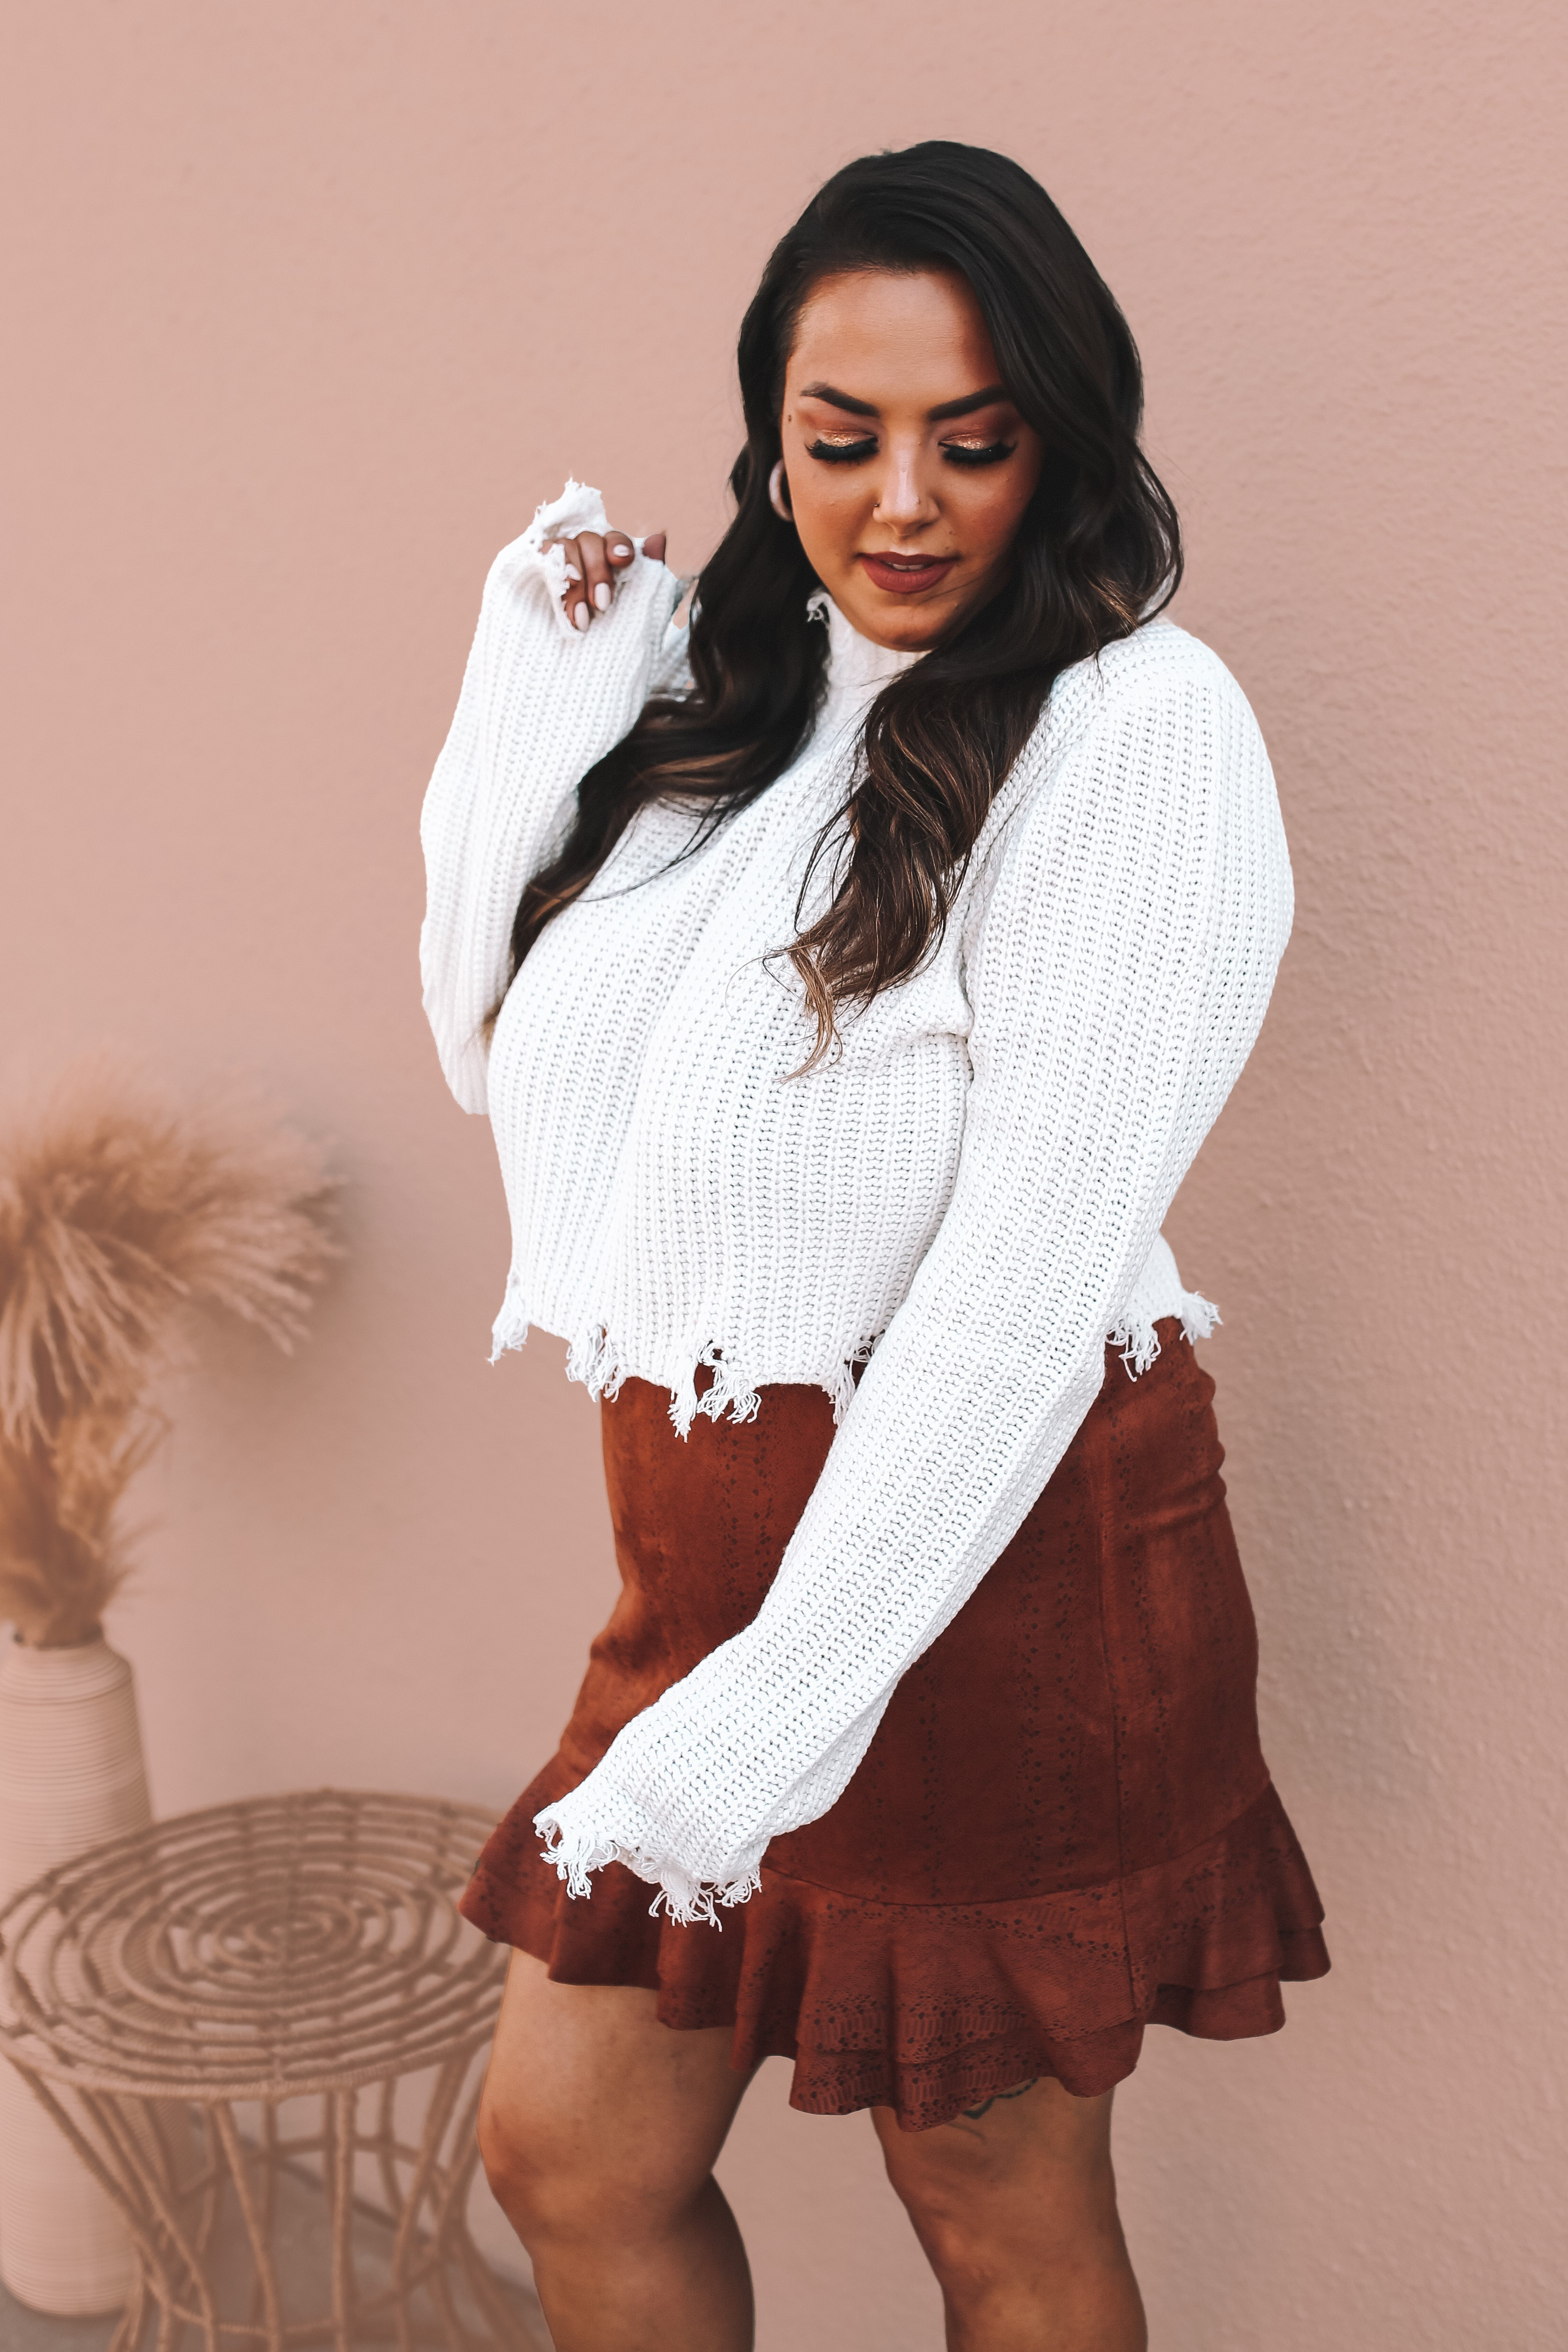 WHITE KNIT, SEMI CROPPED, MOCK NECK SWEATER WITH FRINGED DISTRESSING ON EDGES. 100% ACRYLIC. AMANDA IS 5'7 SIZE 2, WEARING A SMALL. GABBY IS SIZE 10/12 WEARING XL. S 0-2 M 4-6 L 8-10 XL 10-12